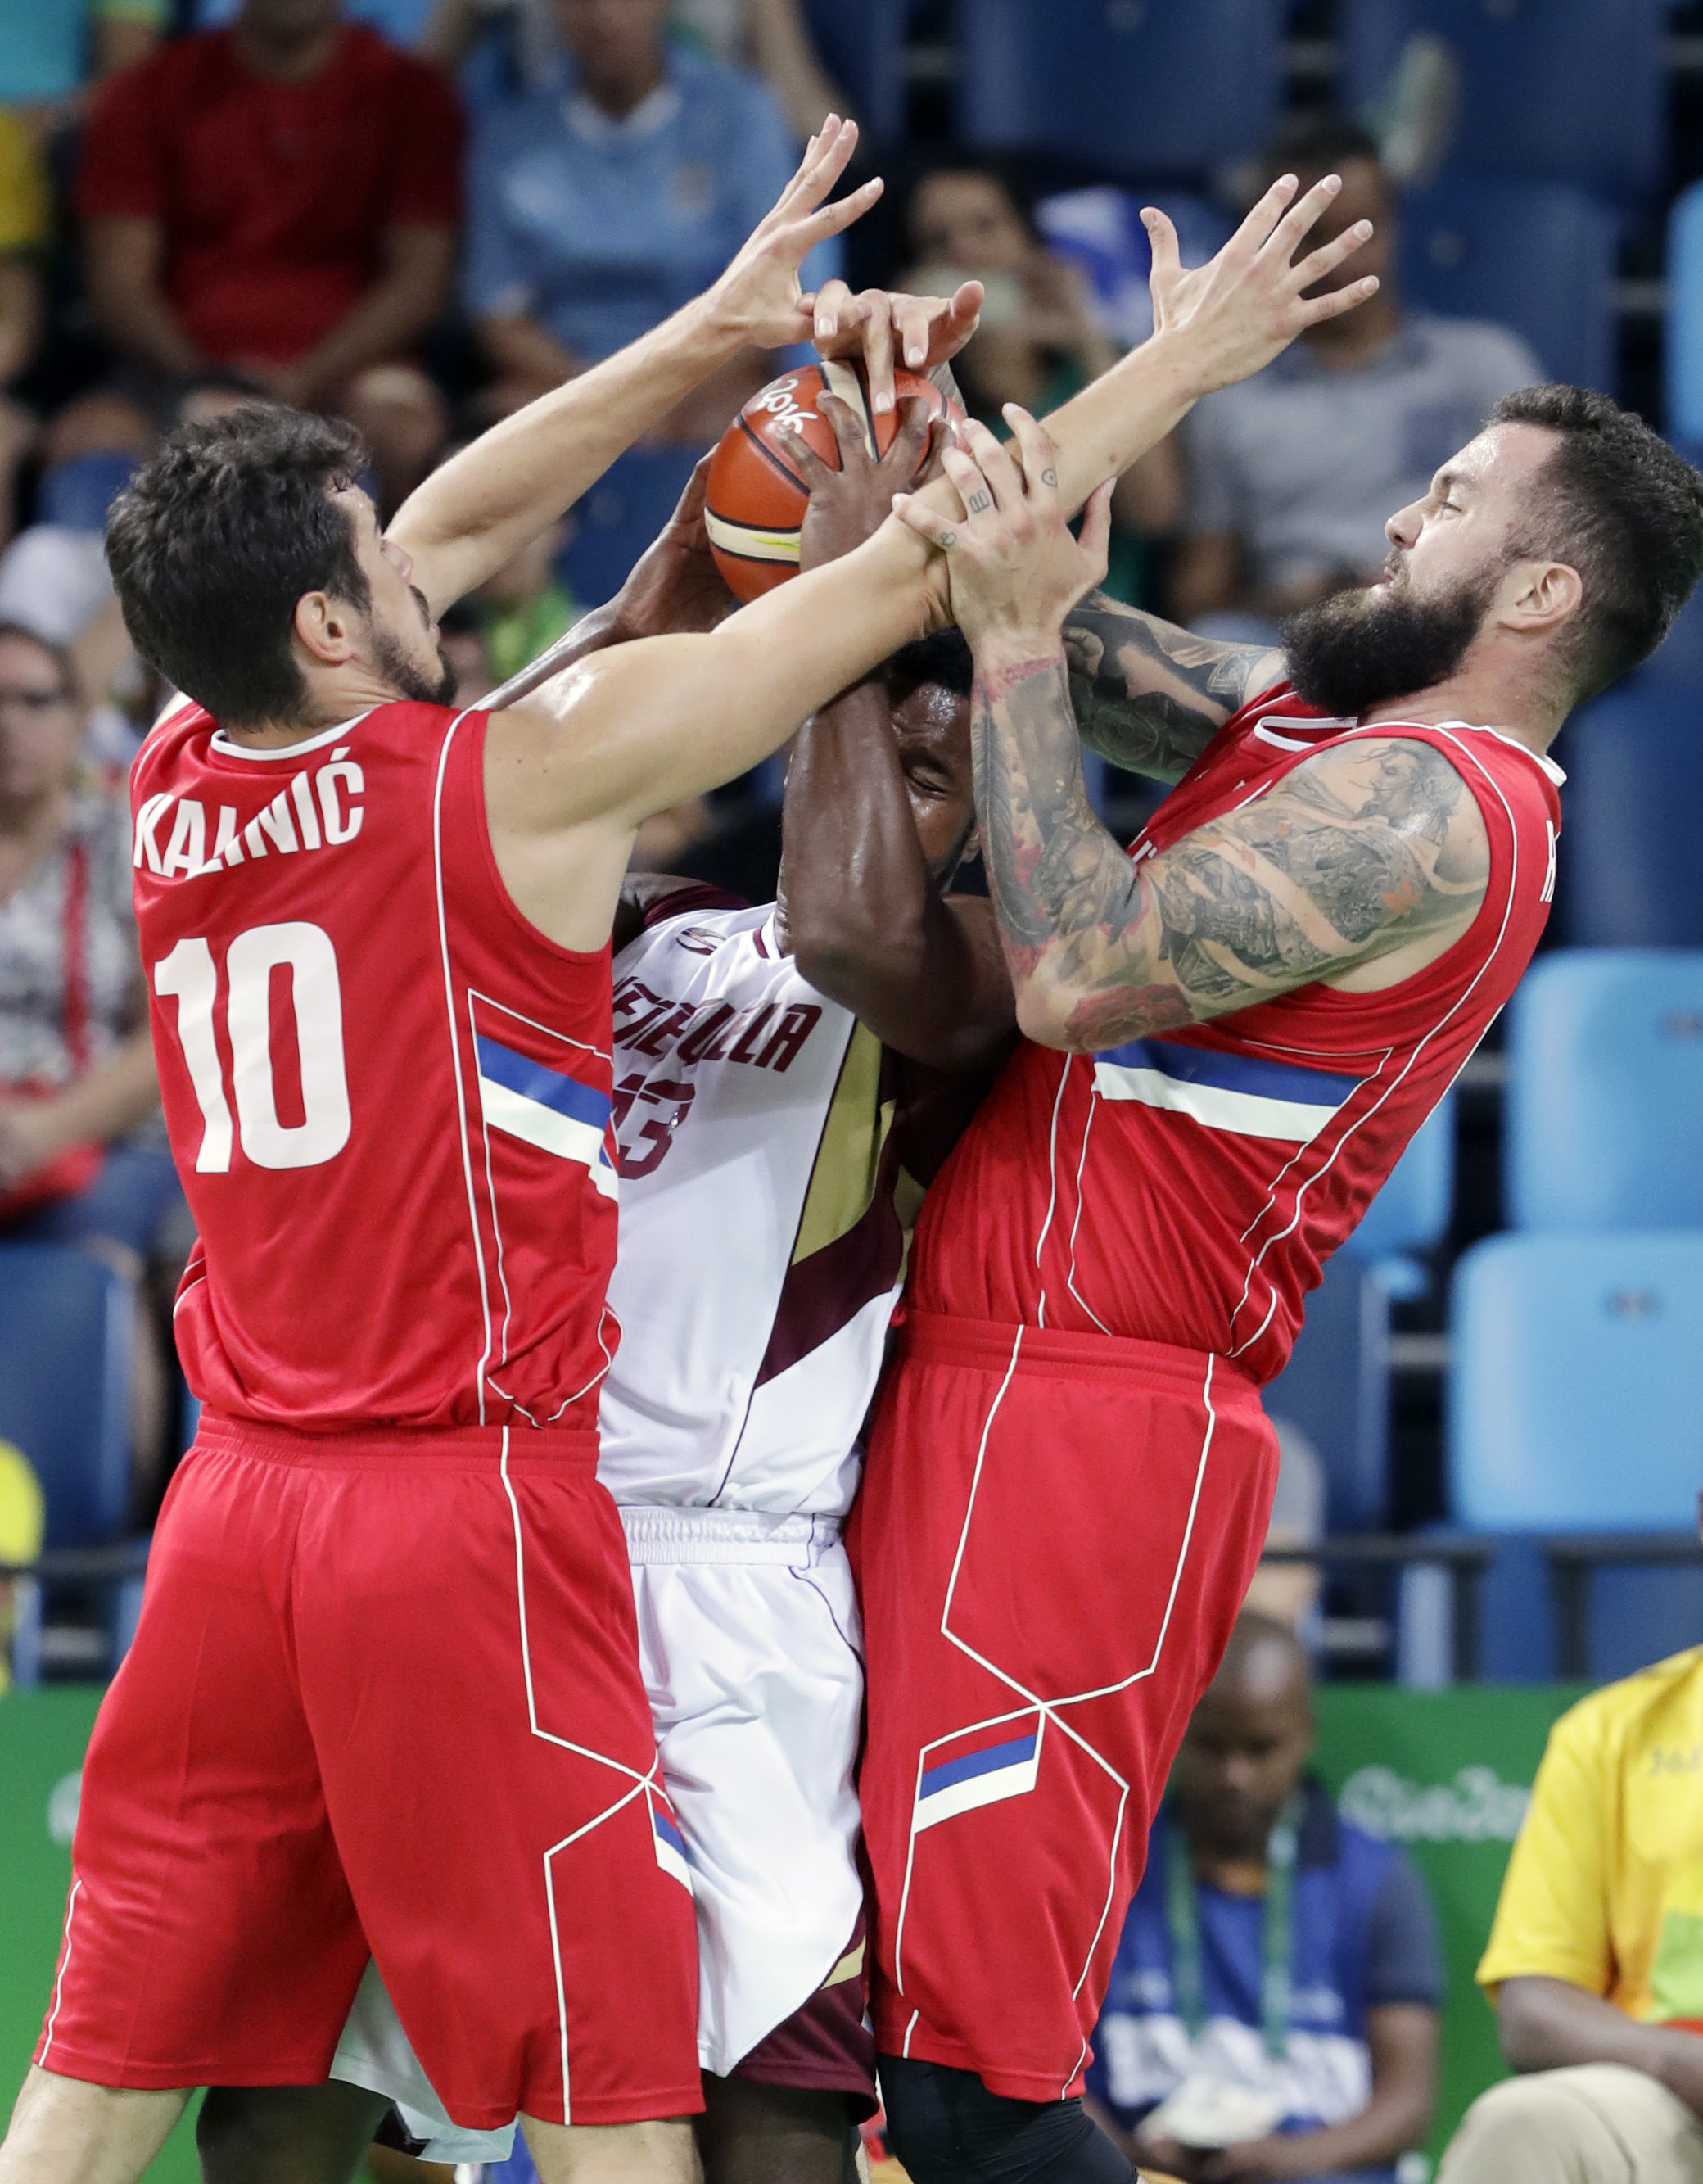 Venezuela's Nestor Colmenares, center, is pressured by Serbia's Nikola Kalinic (10) and Serbia's Miroslav Raduljica, right, during a men's basketball game at the 2016 Summer Olympics in Rio de Janeiro, Brazil, Saturday, Aug. 6, 2016. (AP Photo/Eric Gay)